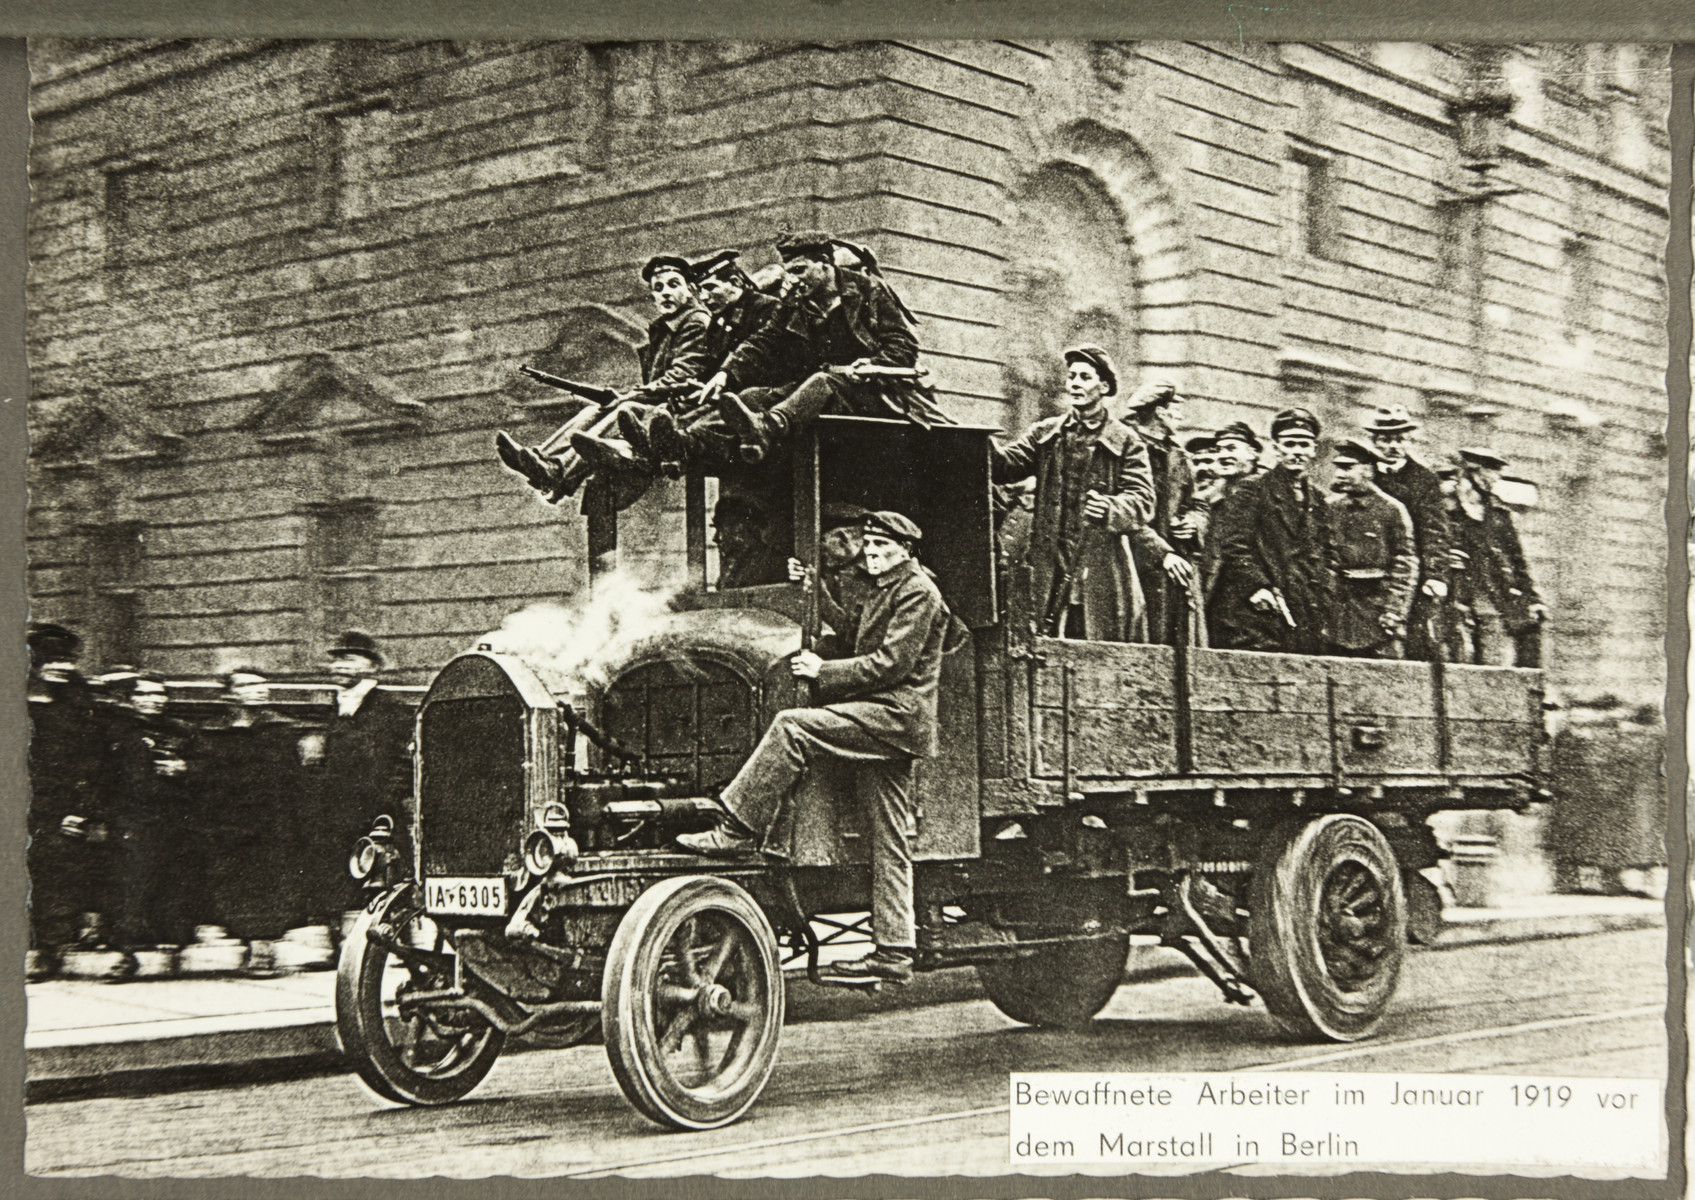 Armed workers ride in an open truck during the Spartacist Uprising.